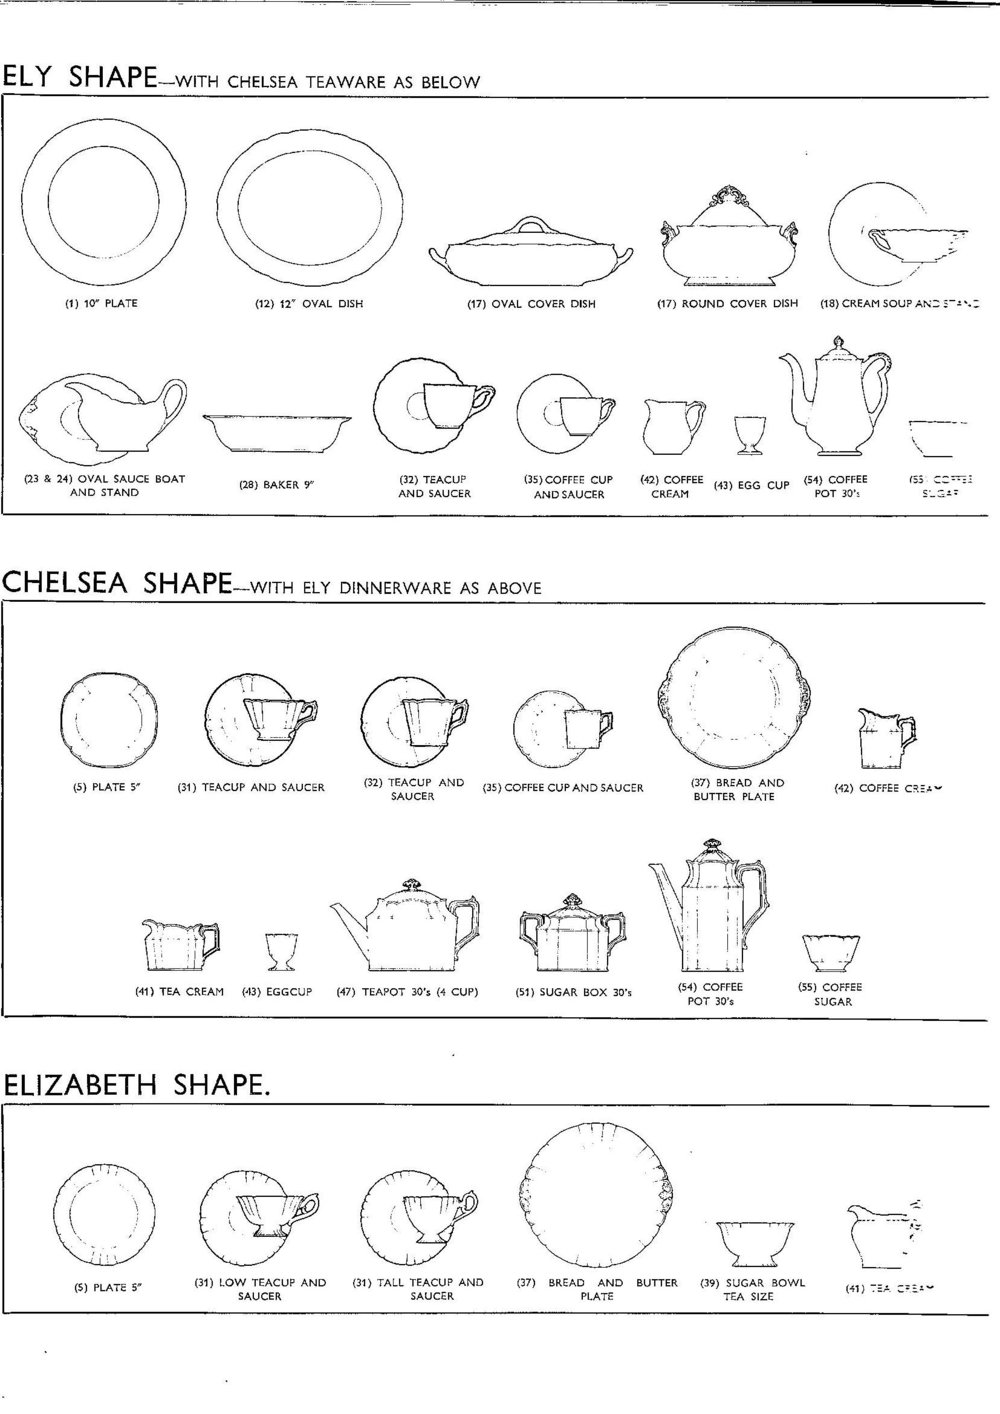 royal-crown-derby-outline-sketches-of-shapes-1955-page-4